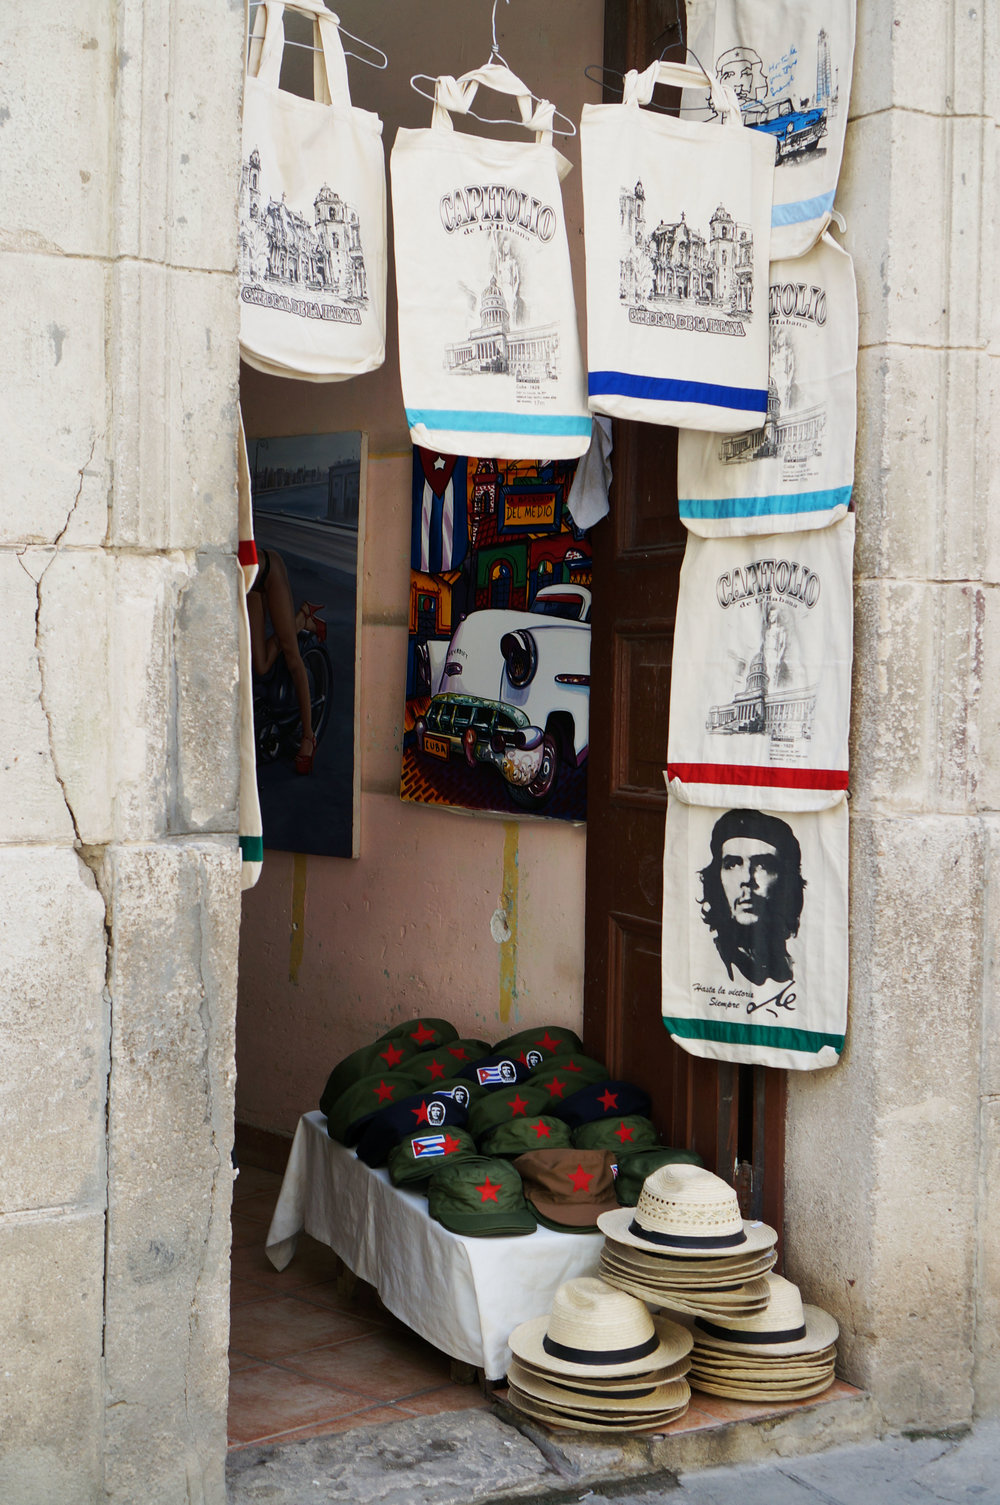 Revolution trinkets for tourists